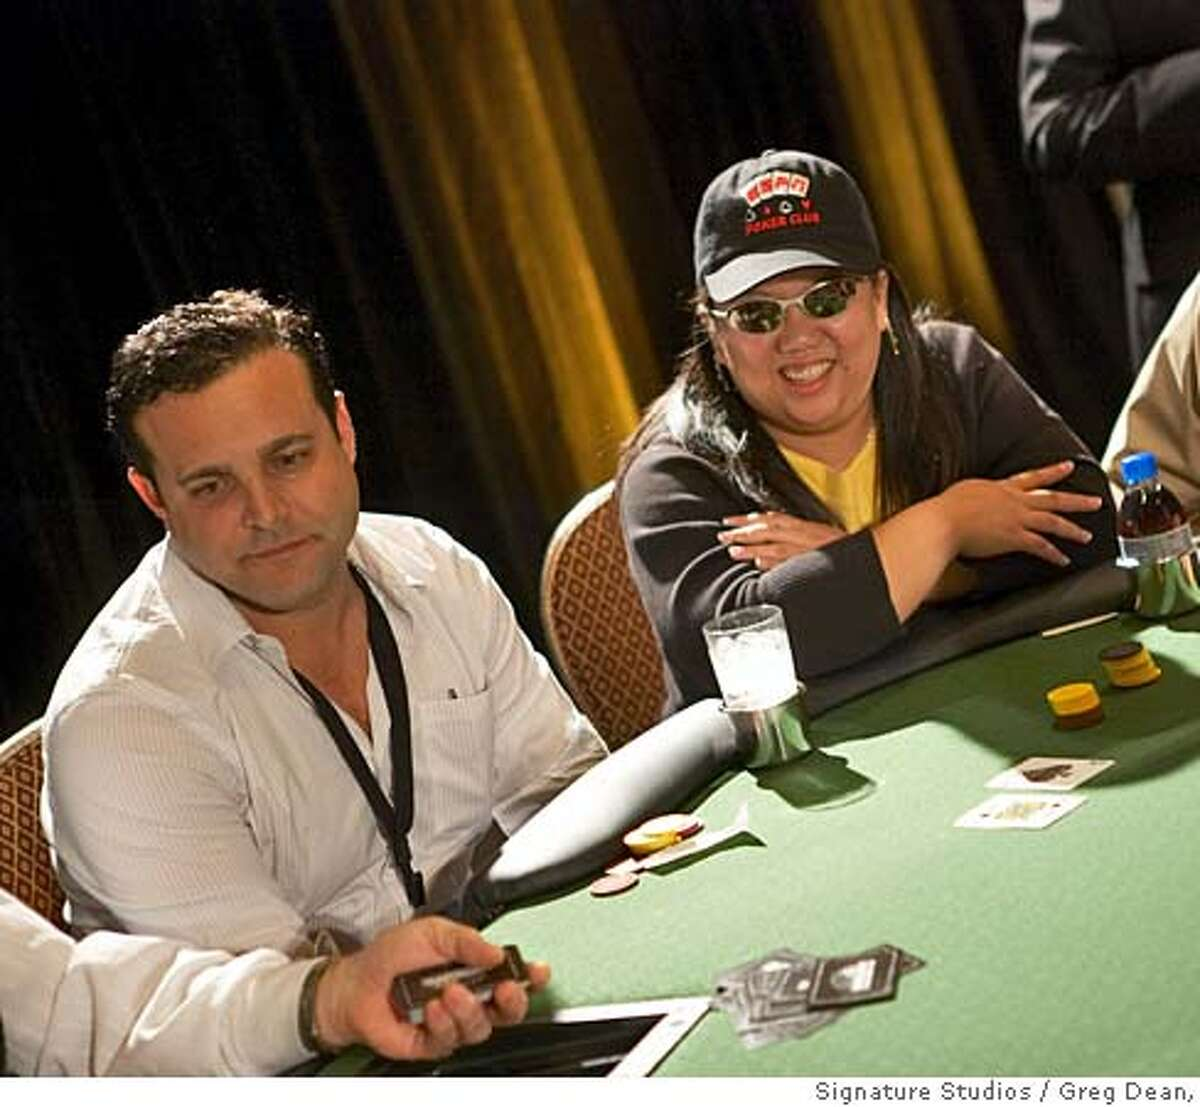 Jim Gerran of San Francisco and Noemi Agustin at the final table at Camp Hellmuth. Please credit: Greg Dean, Signature Studios